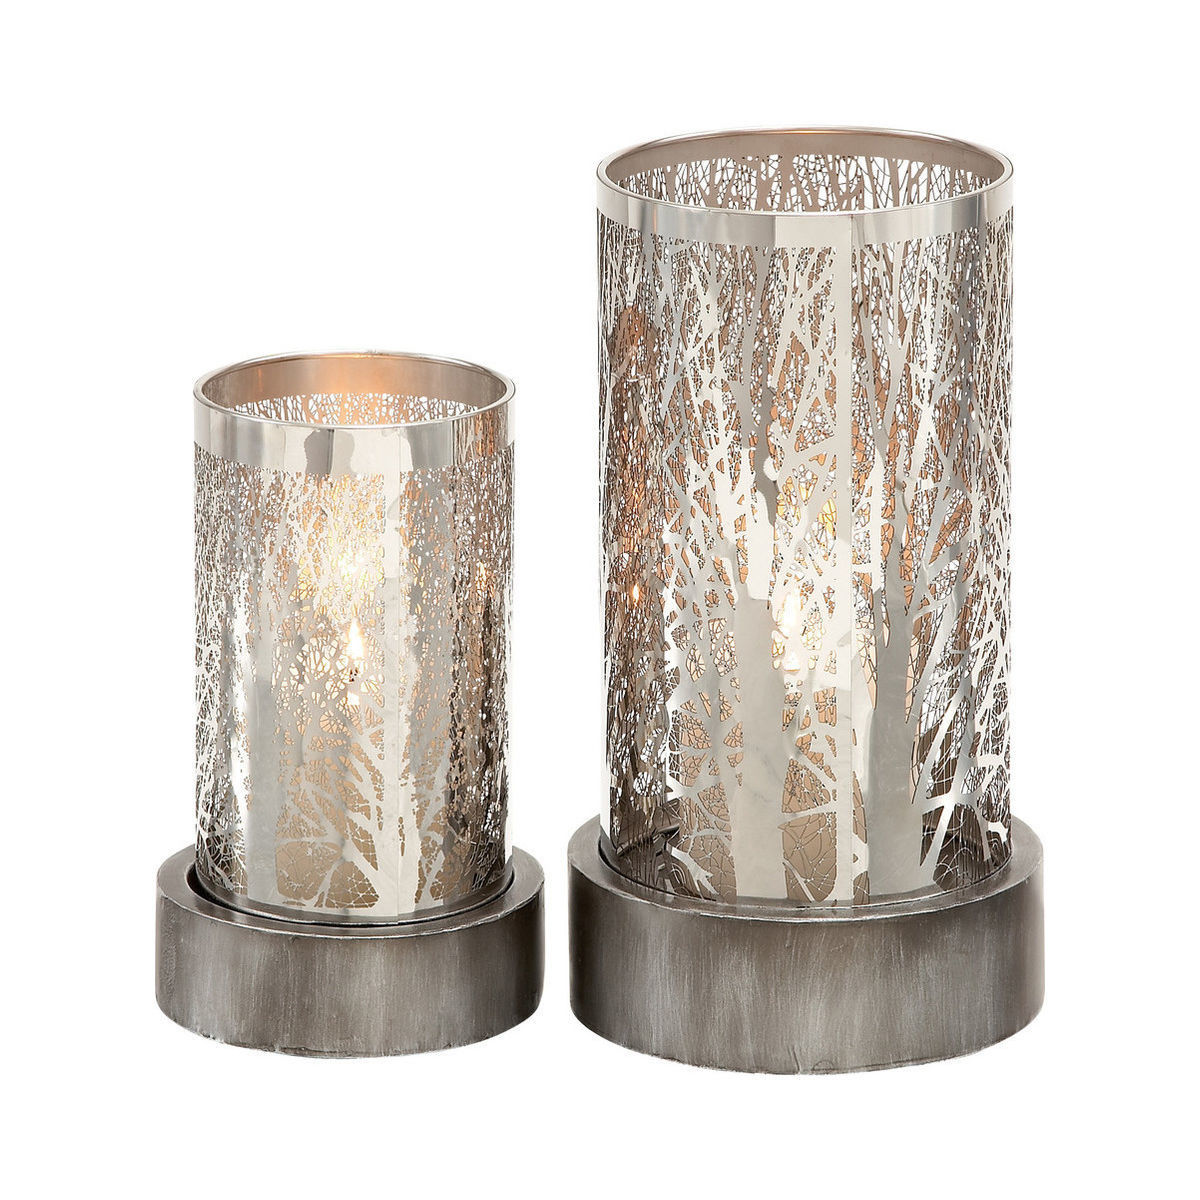 Two frosted metallic candleholders photo